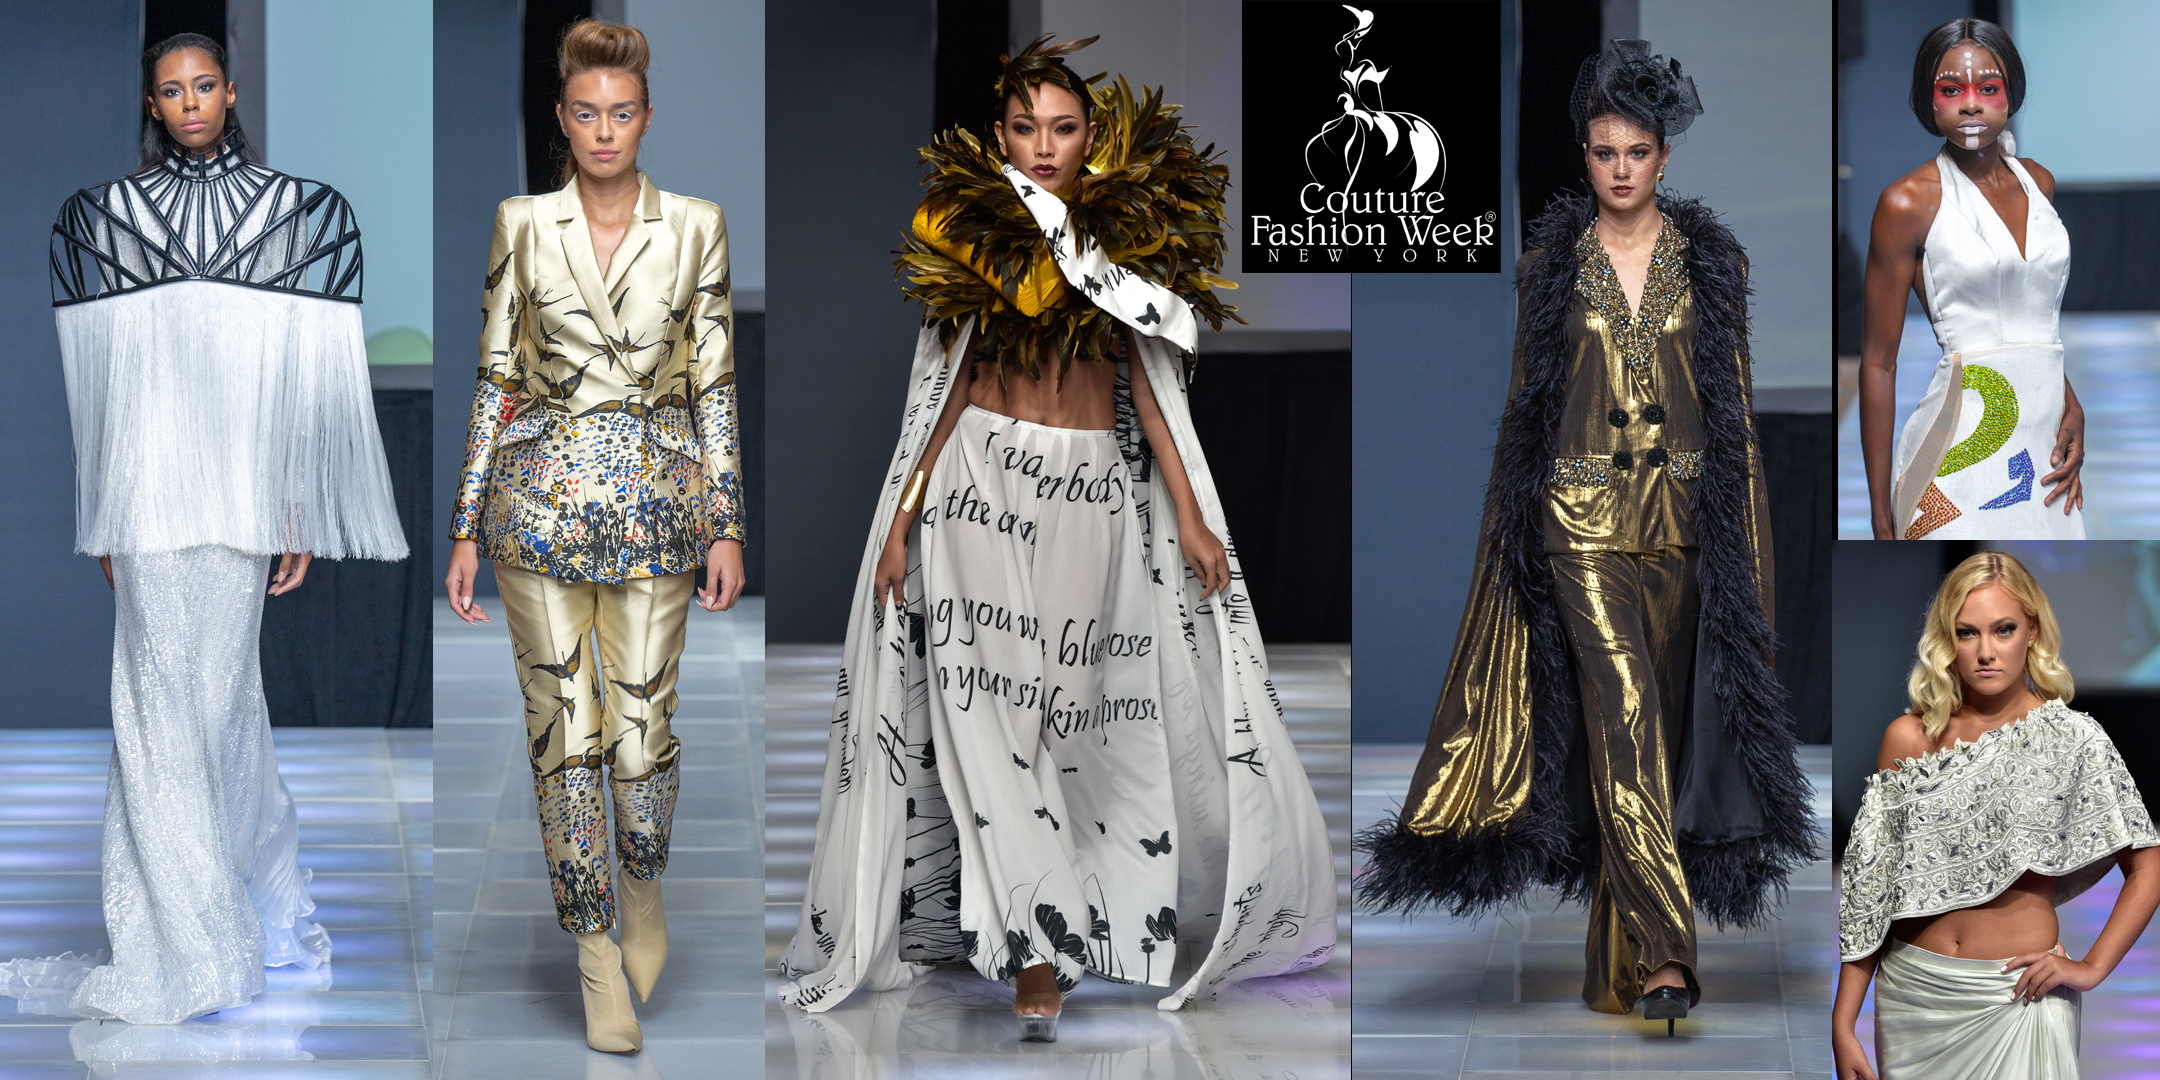 Couture Fashion Week is one of New York Fashion Week's best events